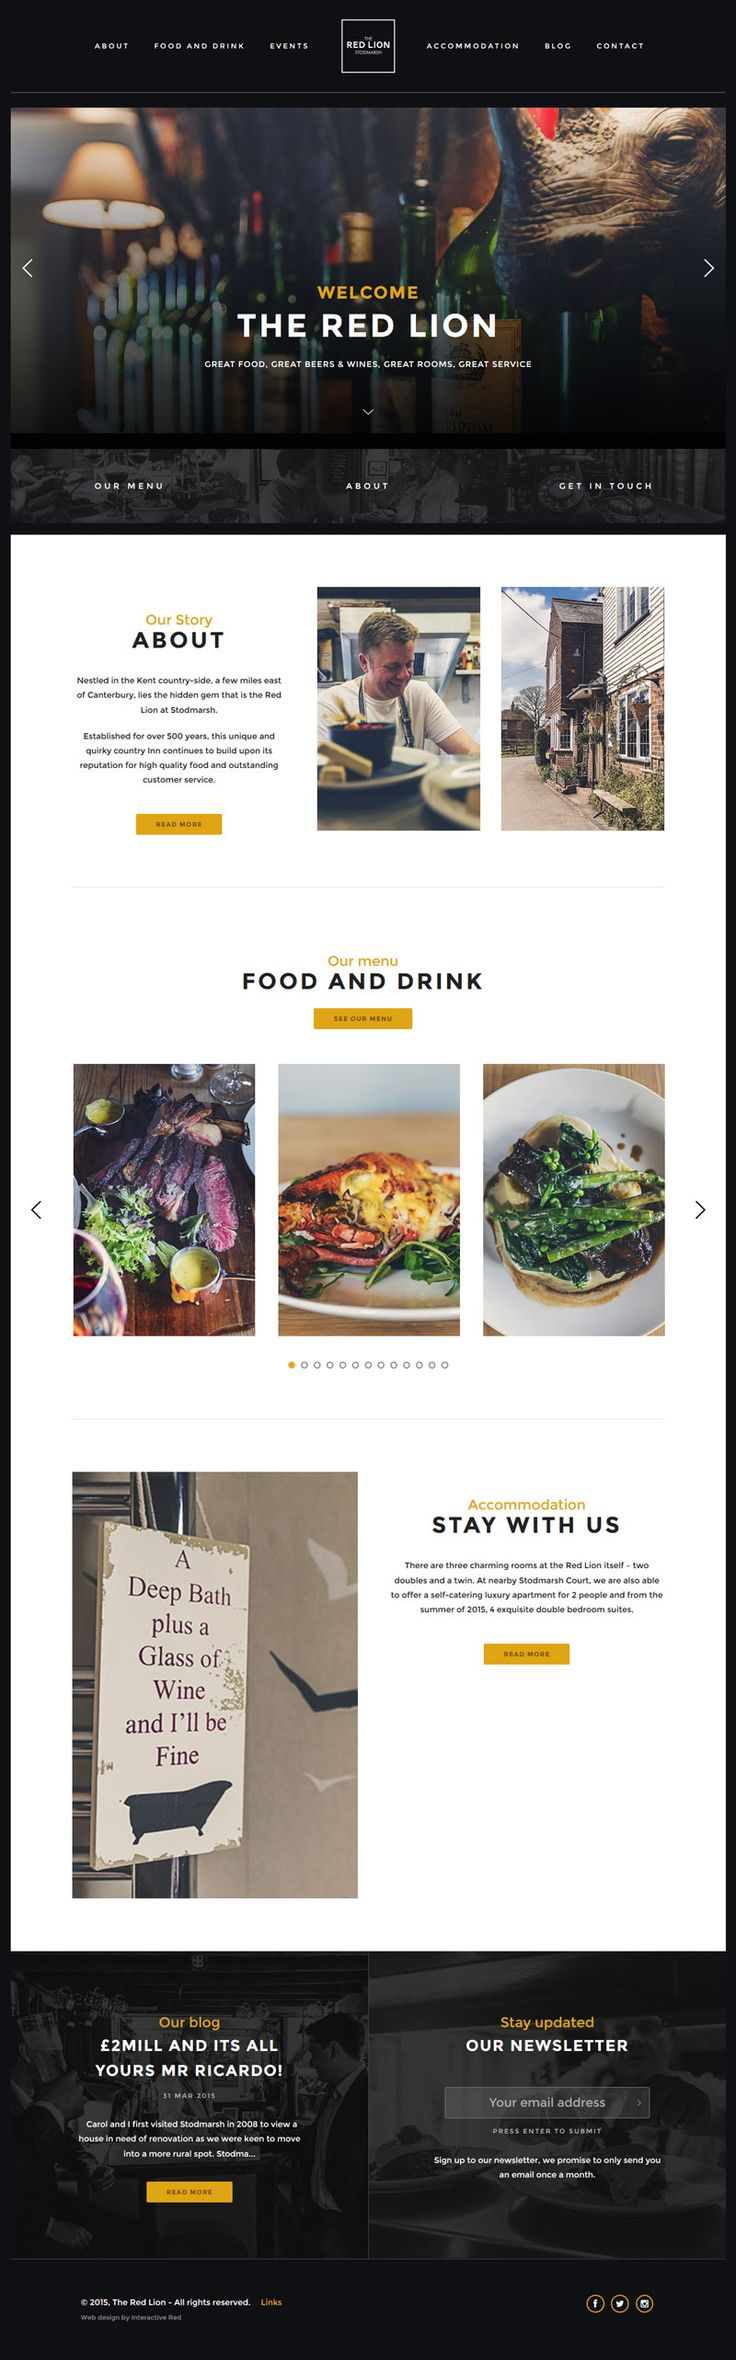 The Red Lion - Restaurant Design Website